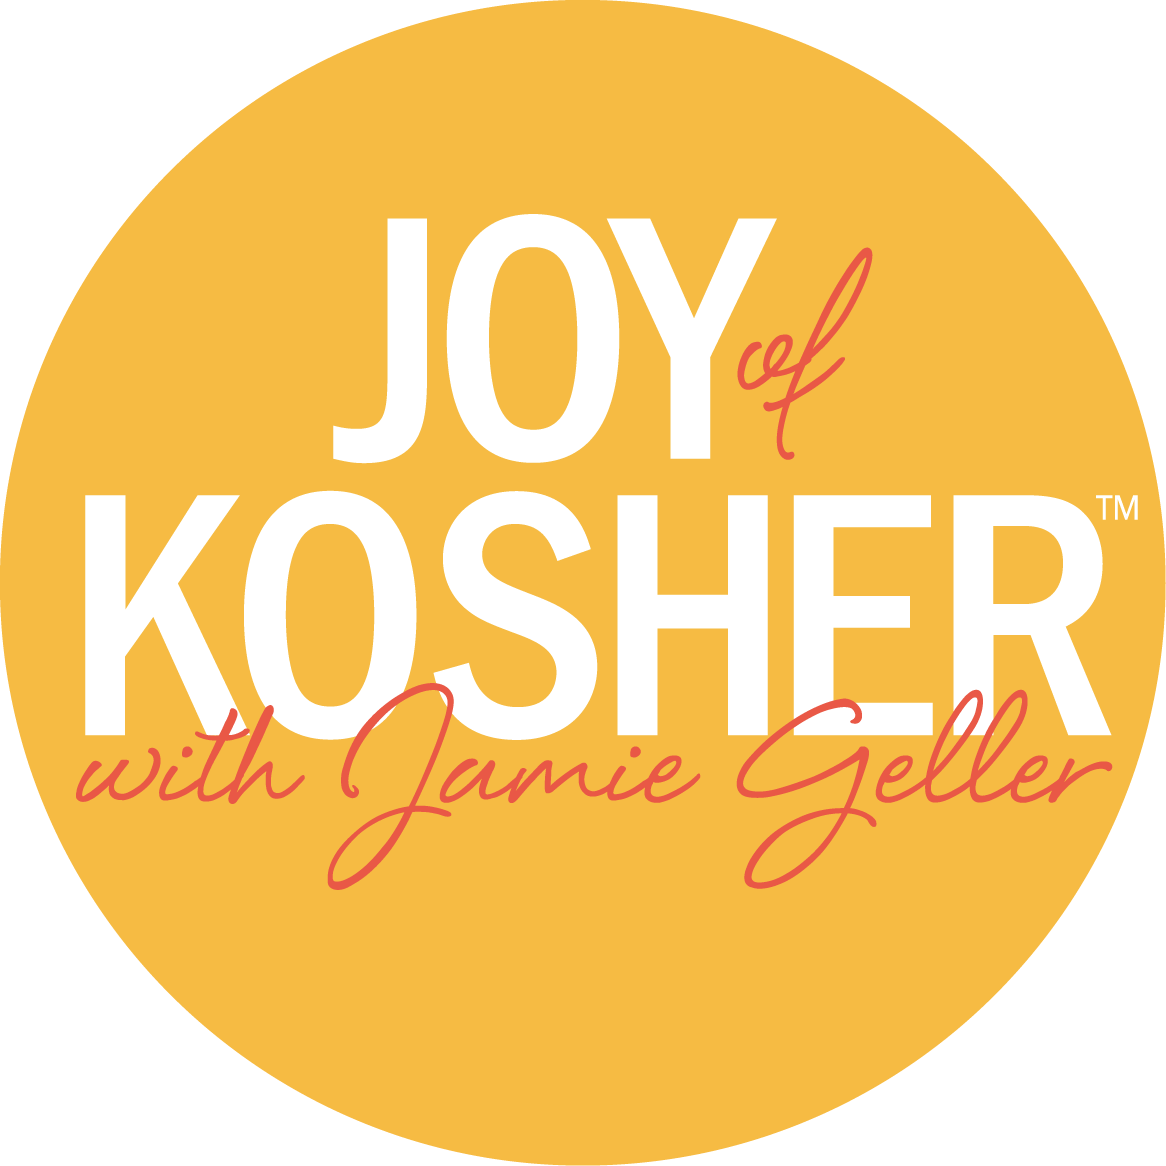 Joy of Kosher with Jamie Geller